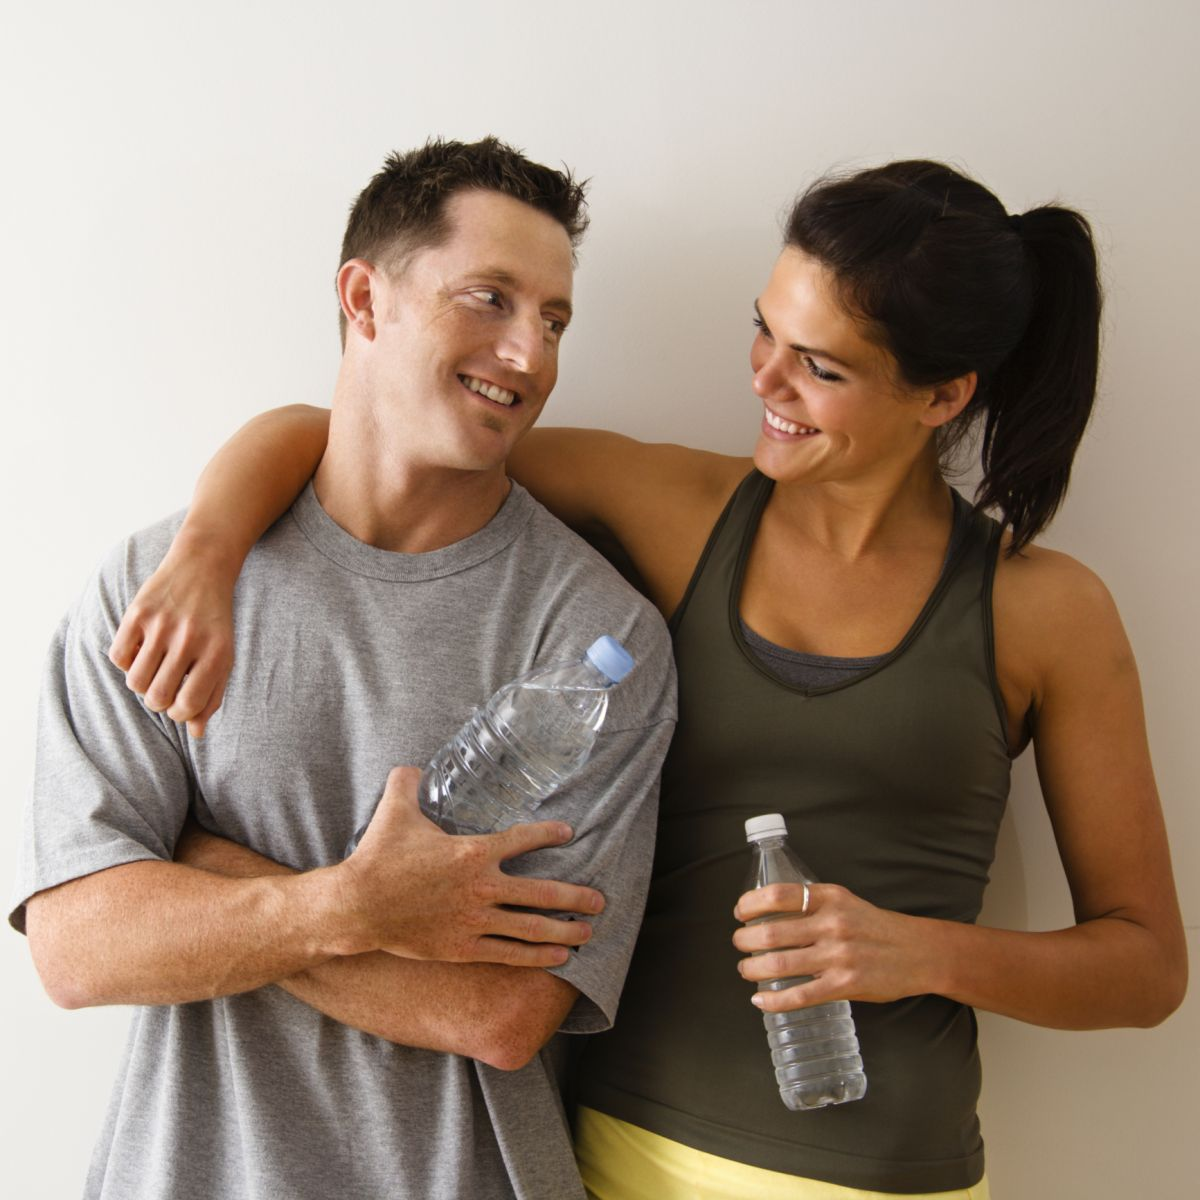 active-valentines-day-date-fitness-together